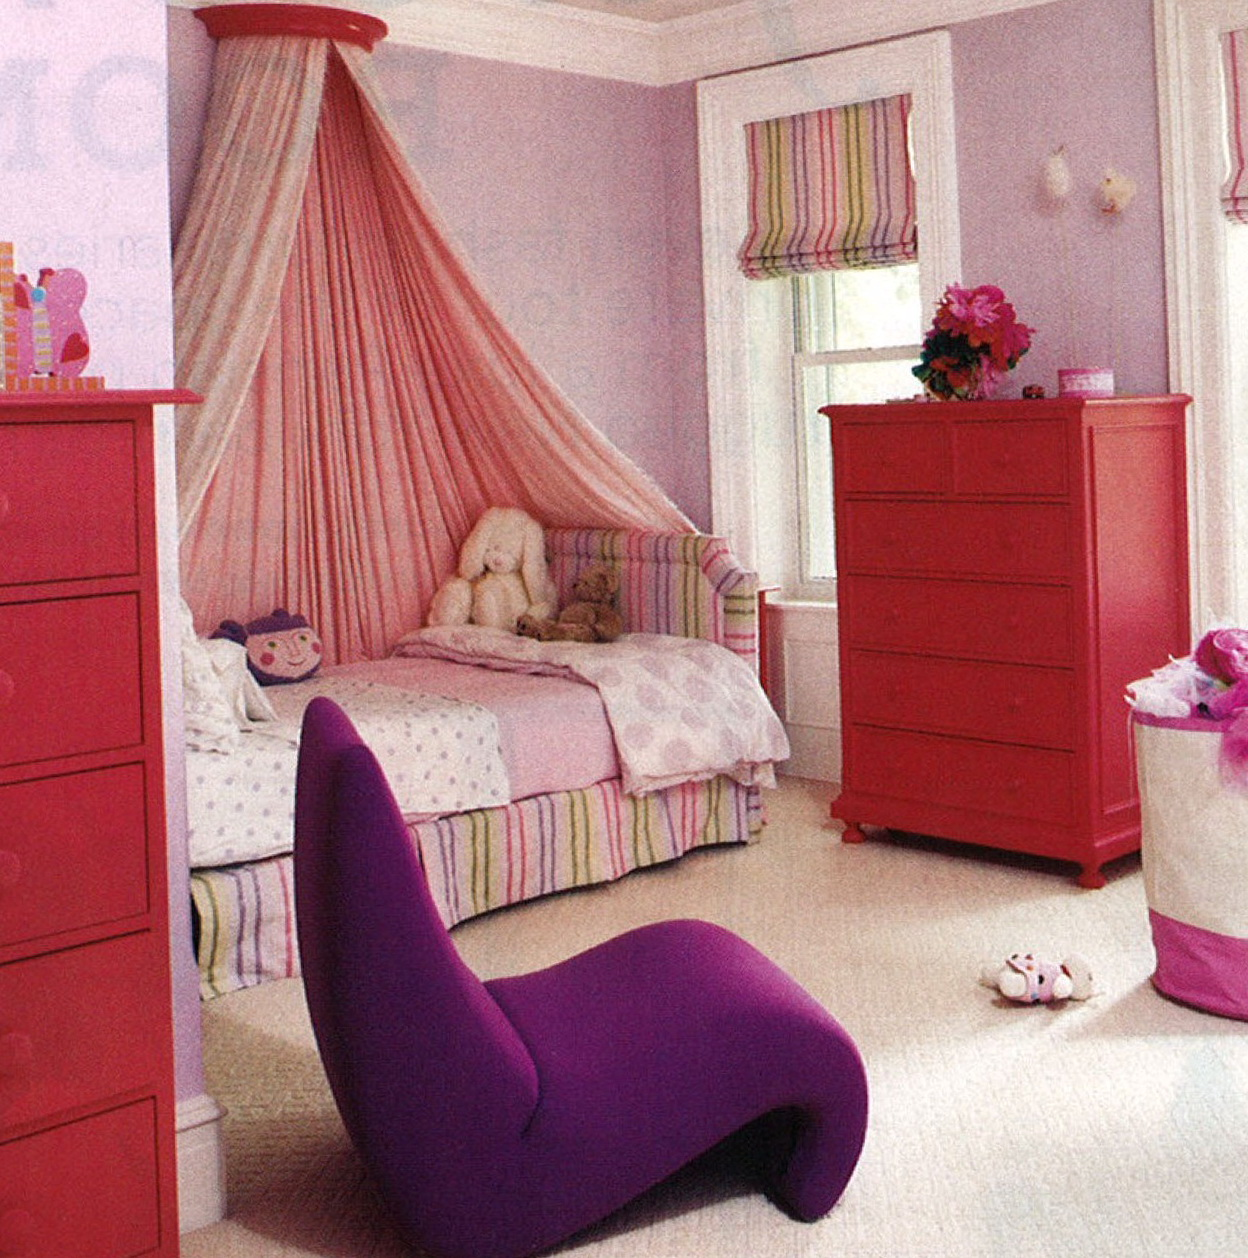 Curtains Around Bunk Bed